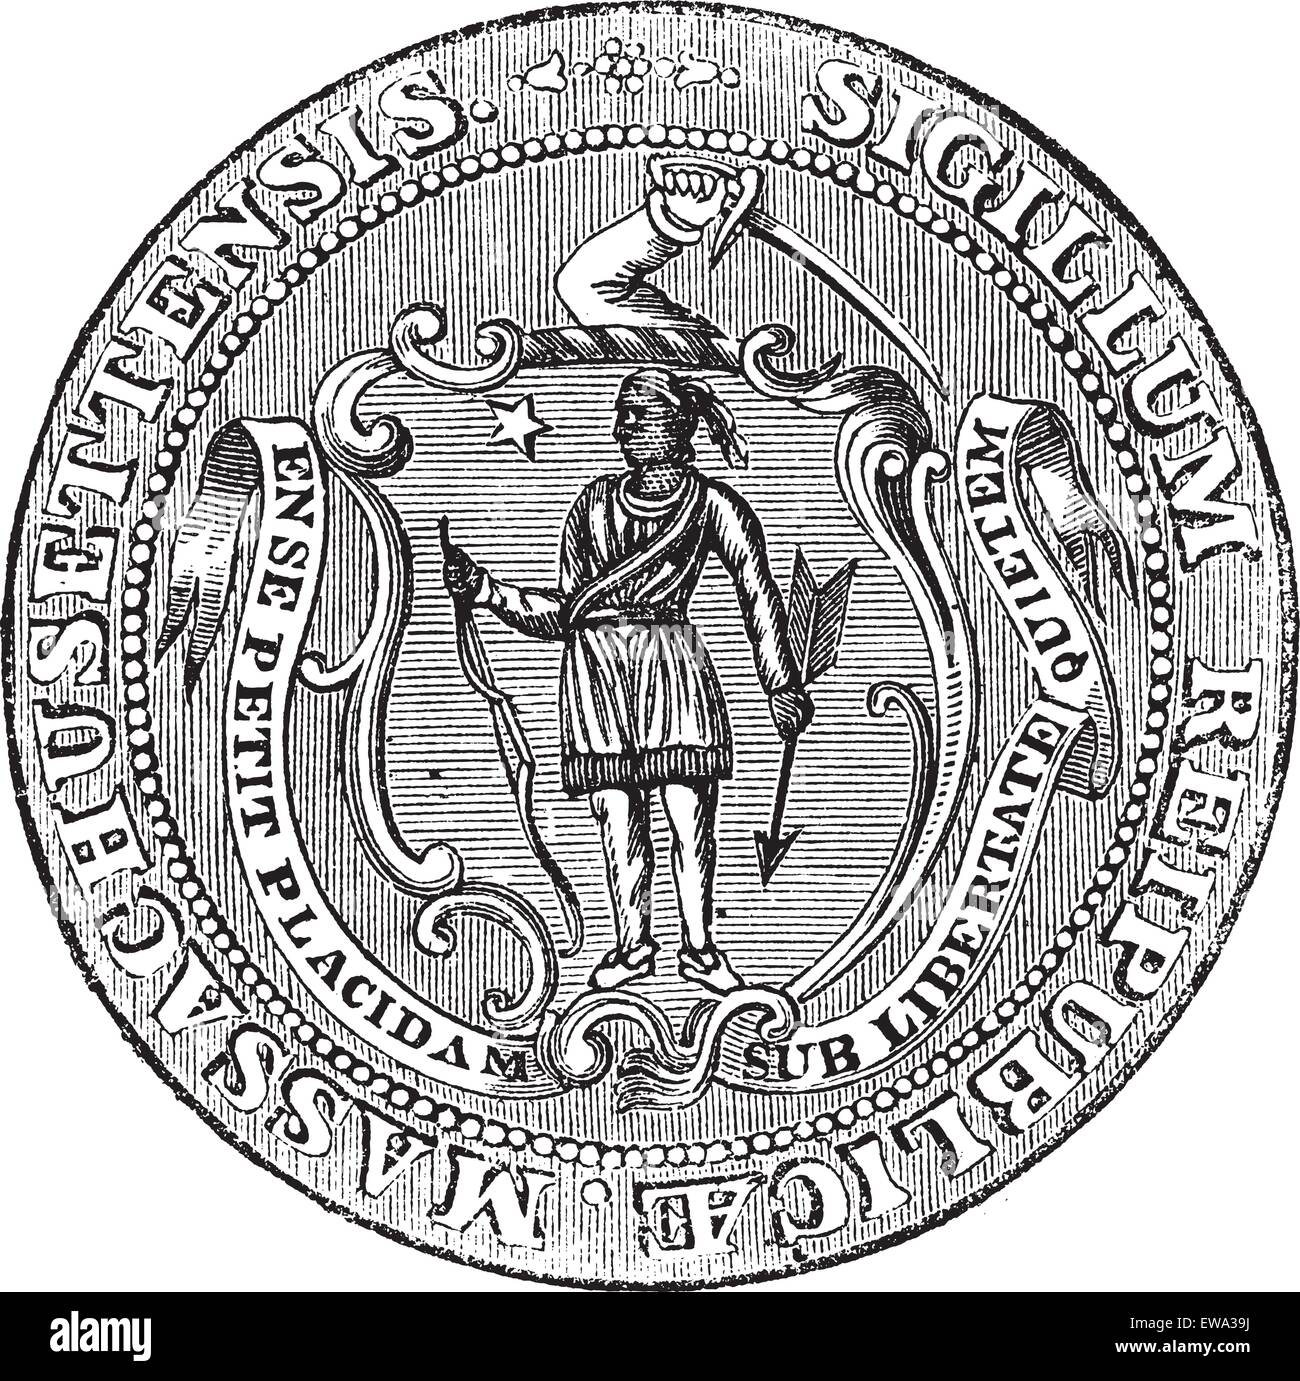 Great Seal of the Commonwealth of Massachusetts or the Seal of the Republic of Massachusetts, United States, vintage - Stock Image